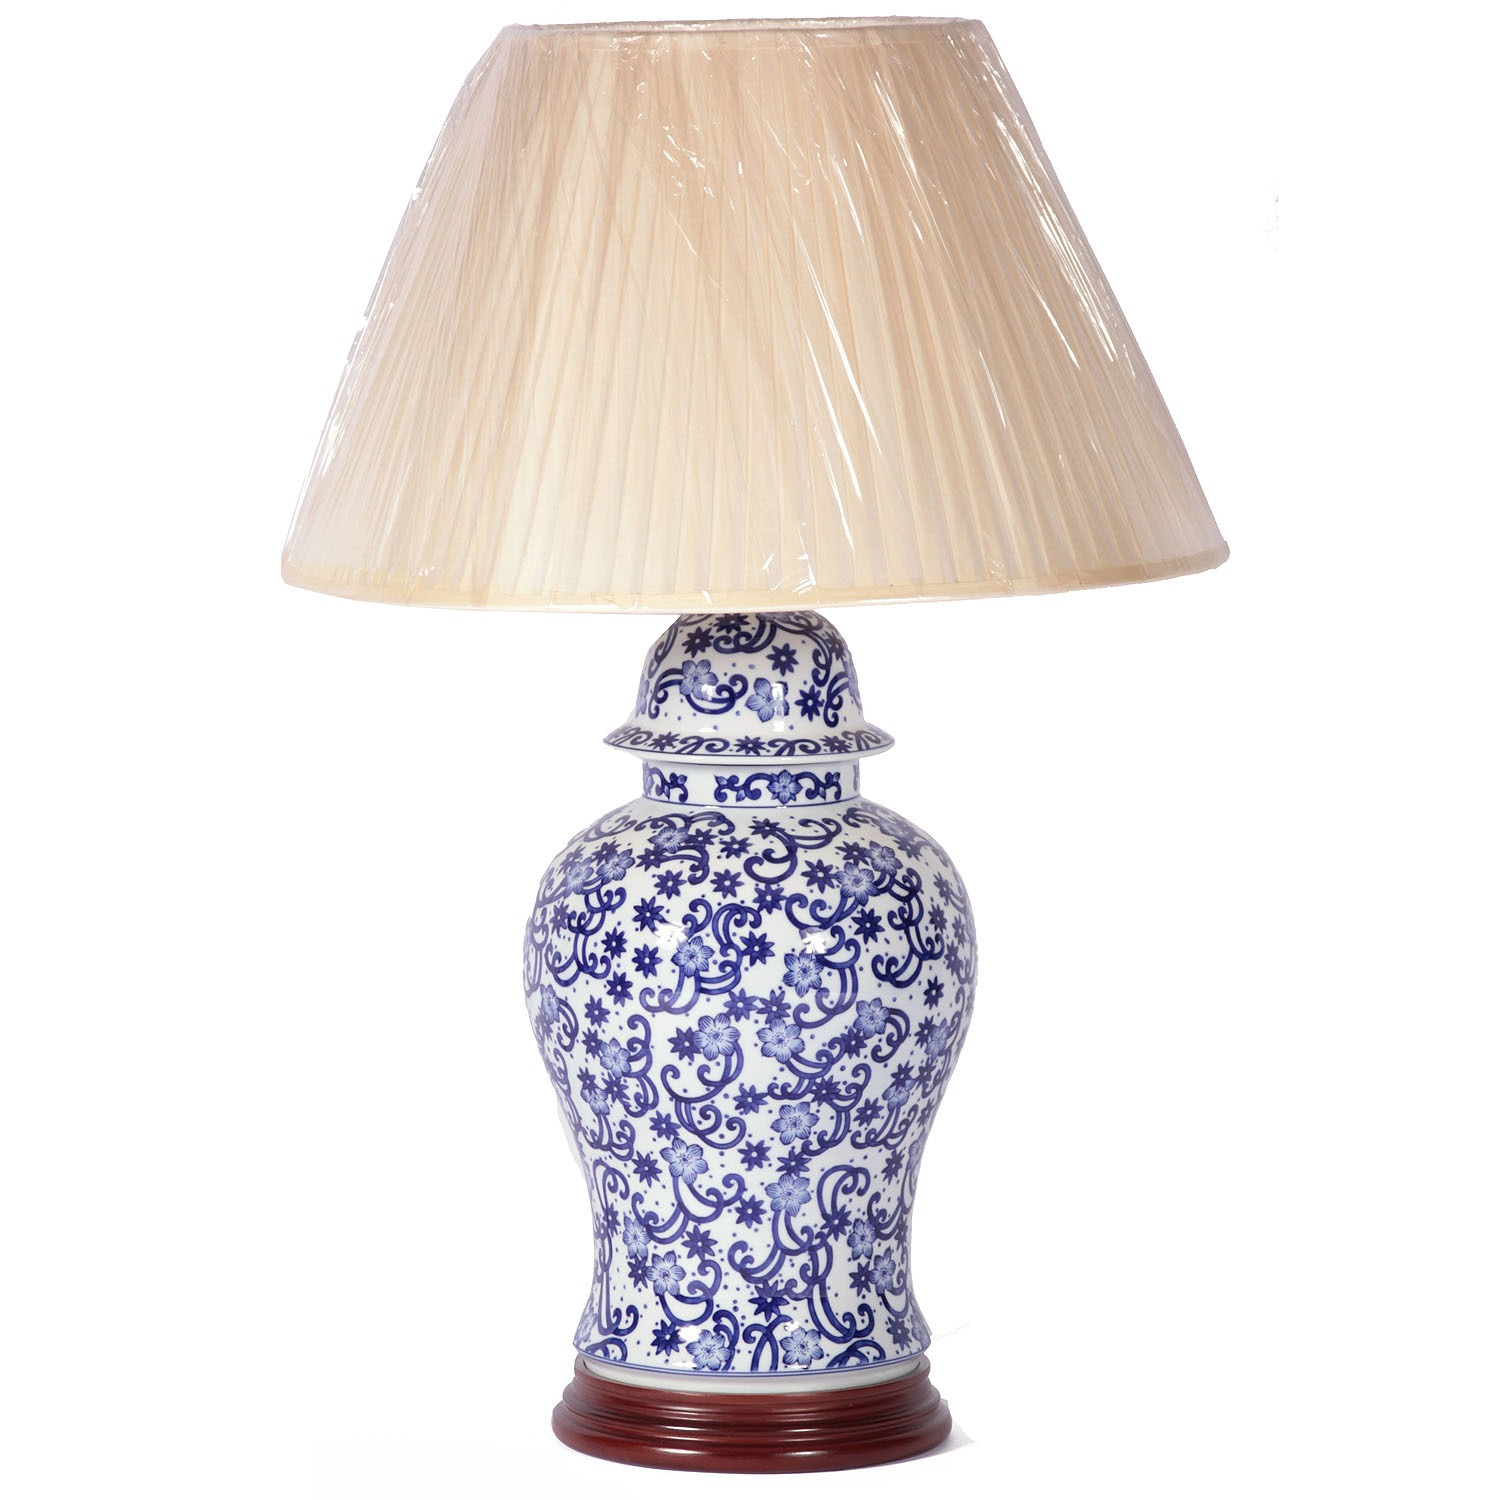 Hand painted ceramic lamp with shade